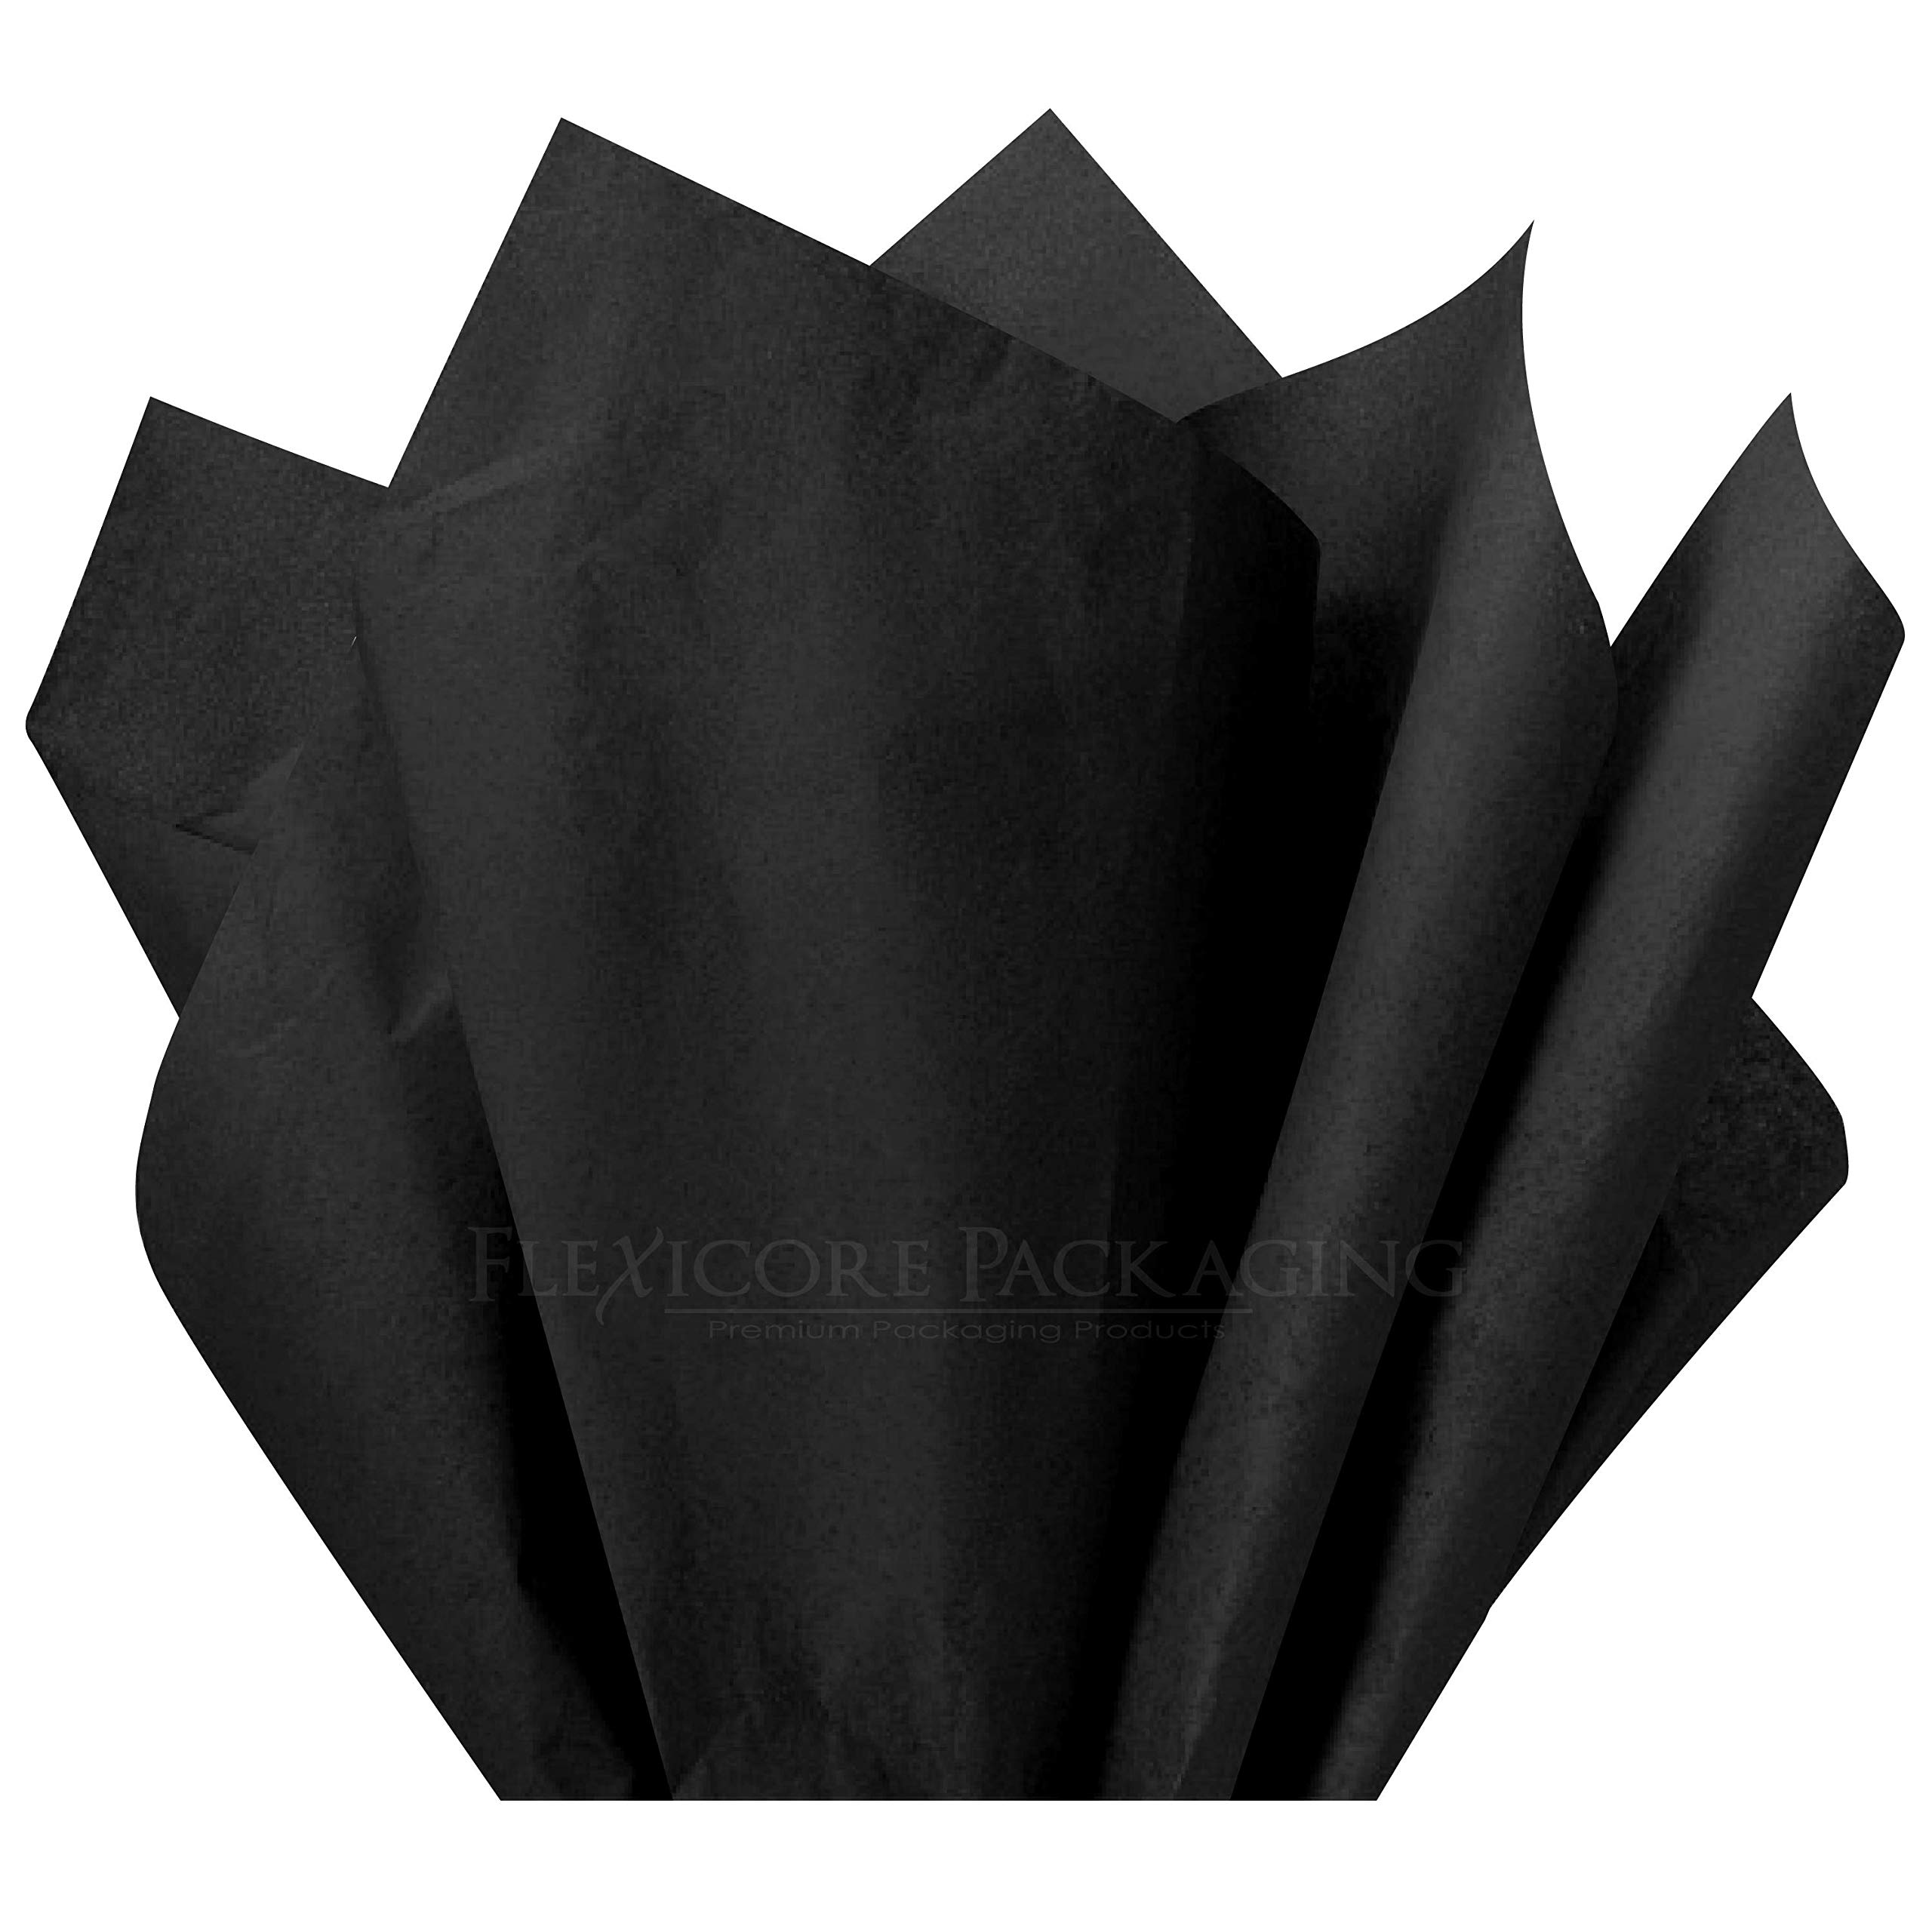 Flexicore Packaging |Black Gift Wrap Tissue Paper | Size: 15 Inch X 20 Inch | Count: 10 Sheets | Color: Black | DIY Craft, Art, Wrapping, Crepe, Decorations, Pom Pom, Packing & Party